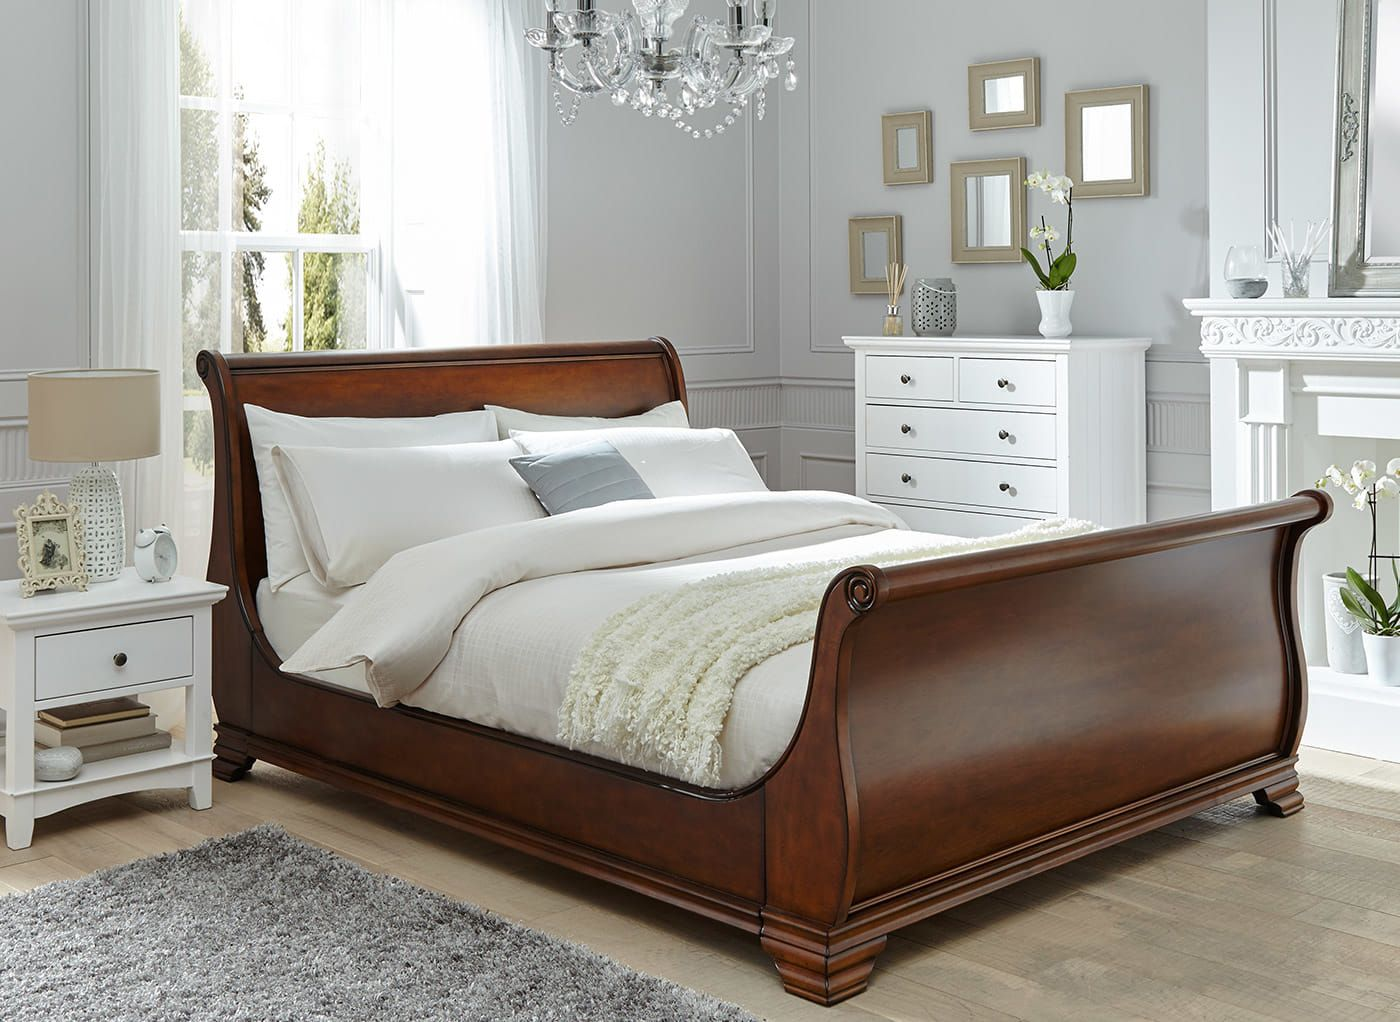 Tips For Selecting Wooden Beds For Your Home In 2020 Wooden Bed